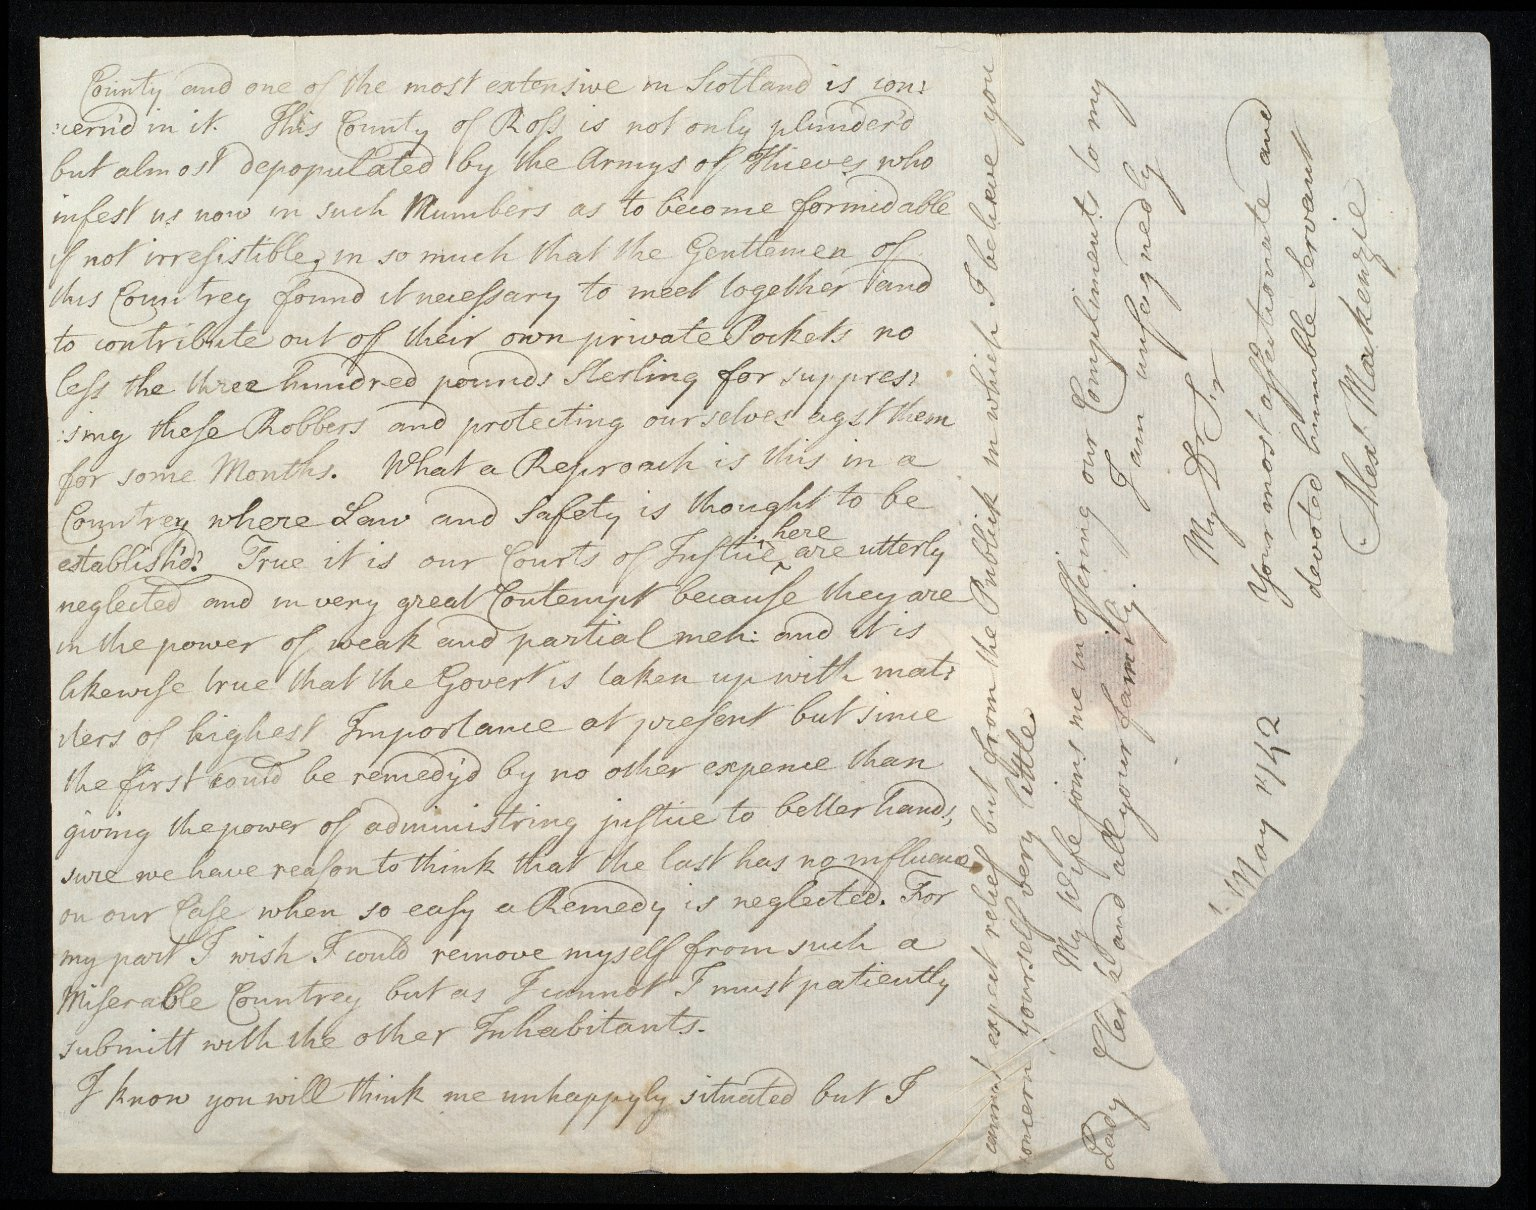 [Letter from Alexander Mackenzie to Sir John Clerk of Penicuik, recommending the proposal of a friend to survey the coasts of Orkney] [2 of 2]